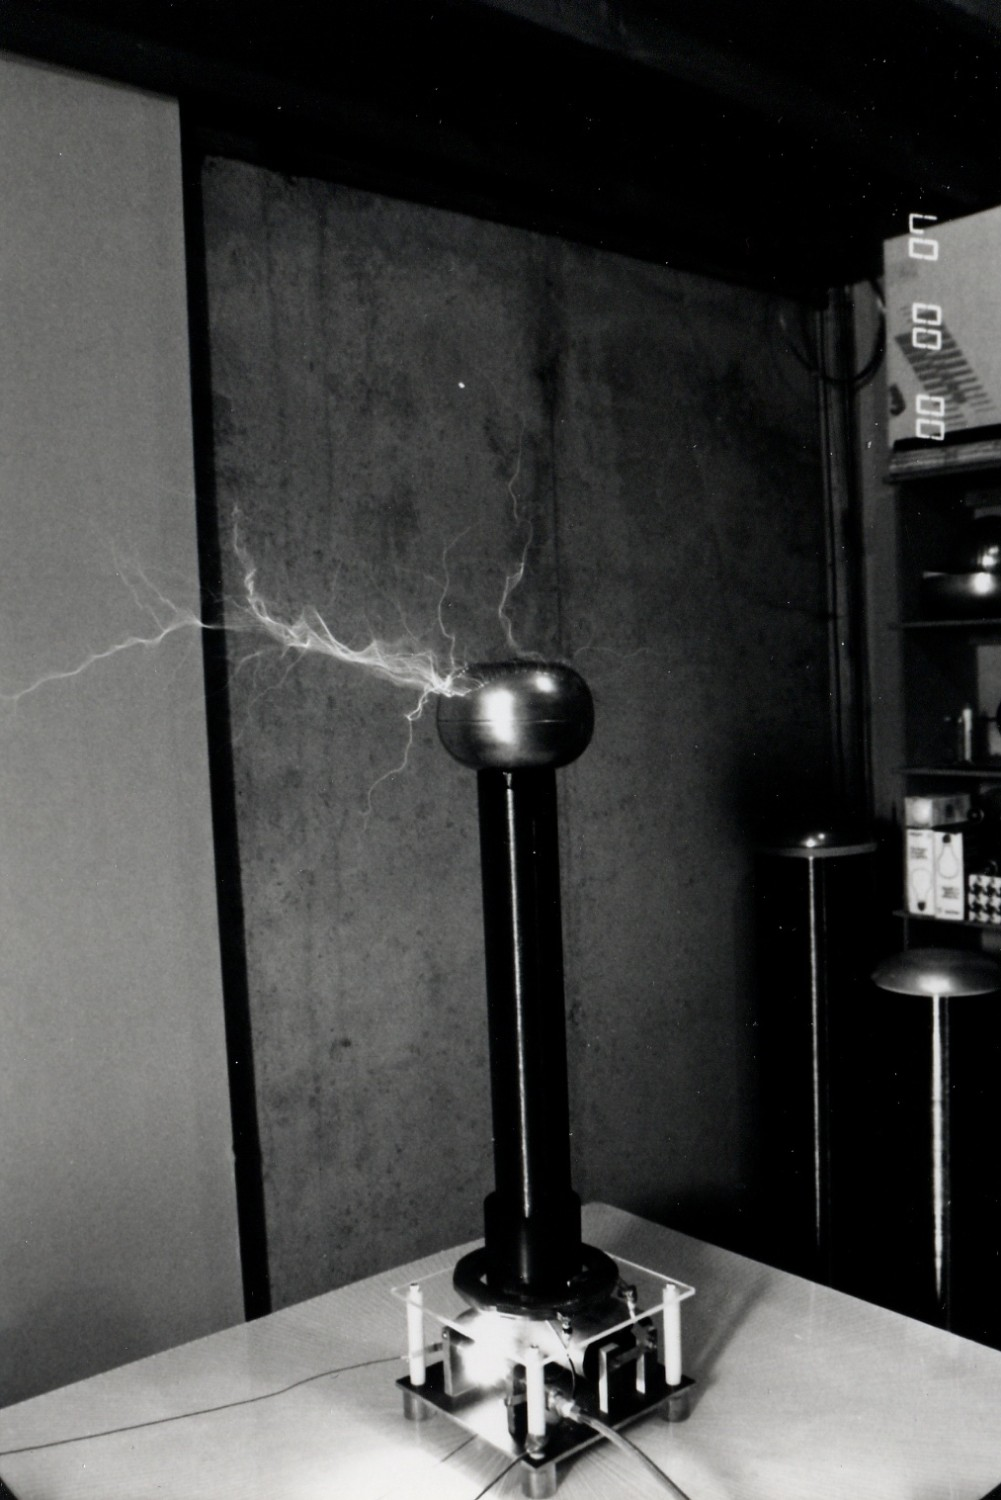 1989 capacitive discharge Tesla coil